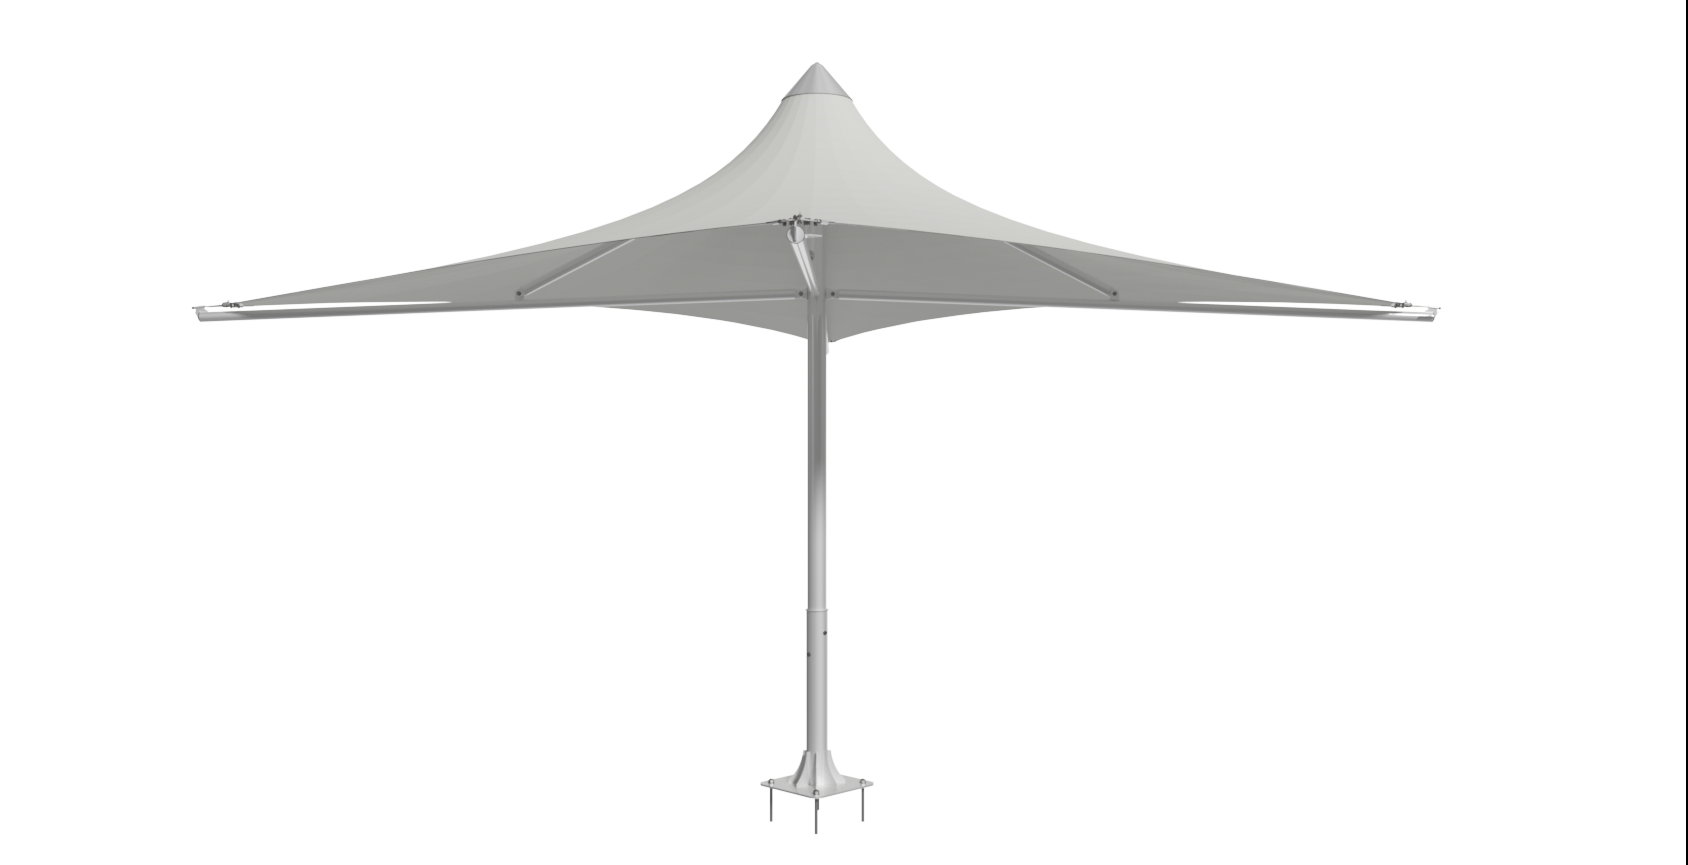 FF High Tensile Wind Rated Umbrella